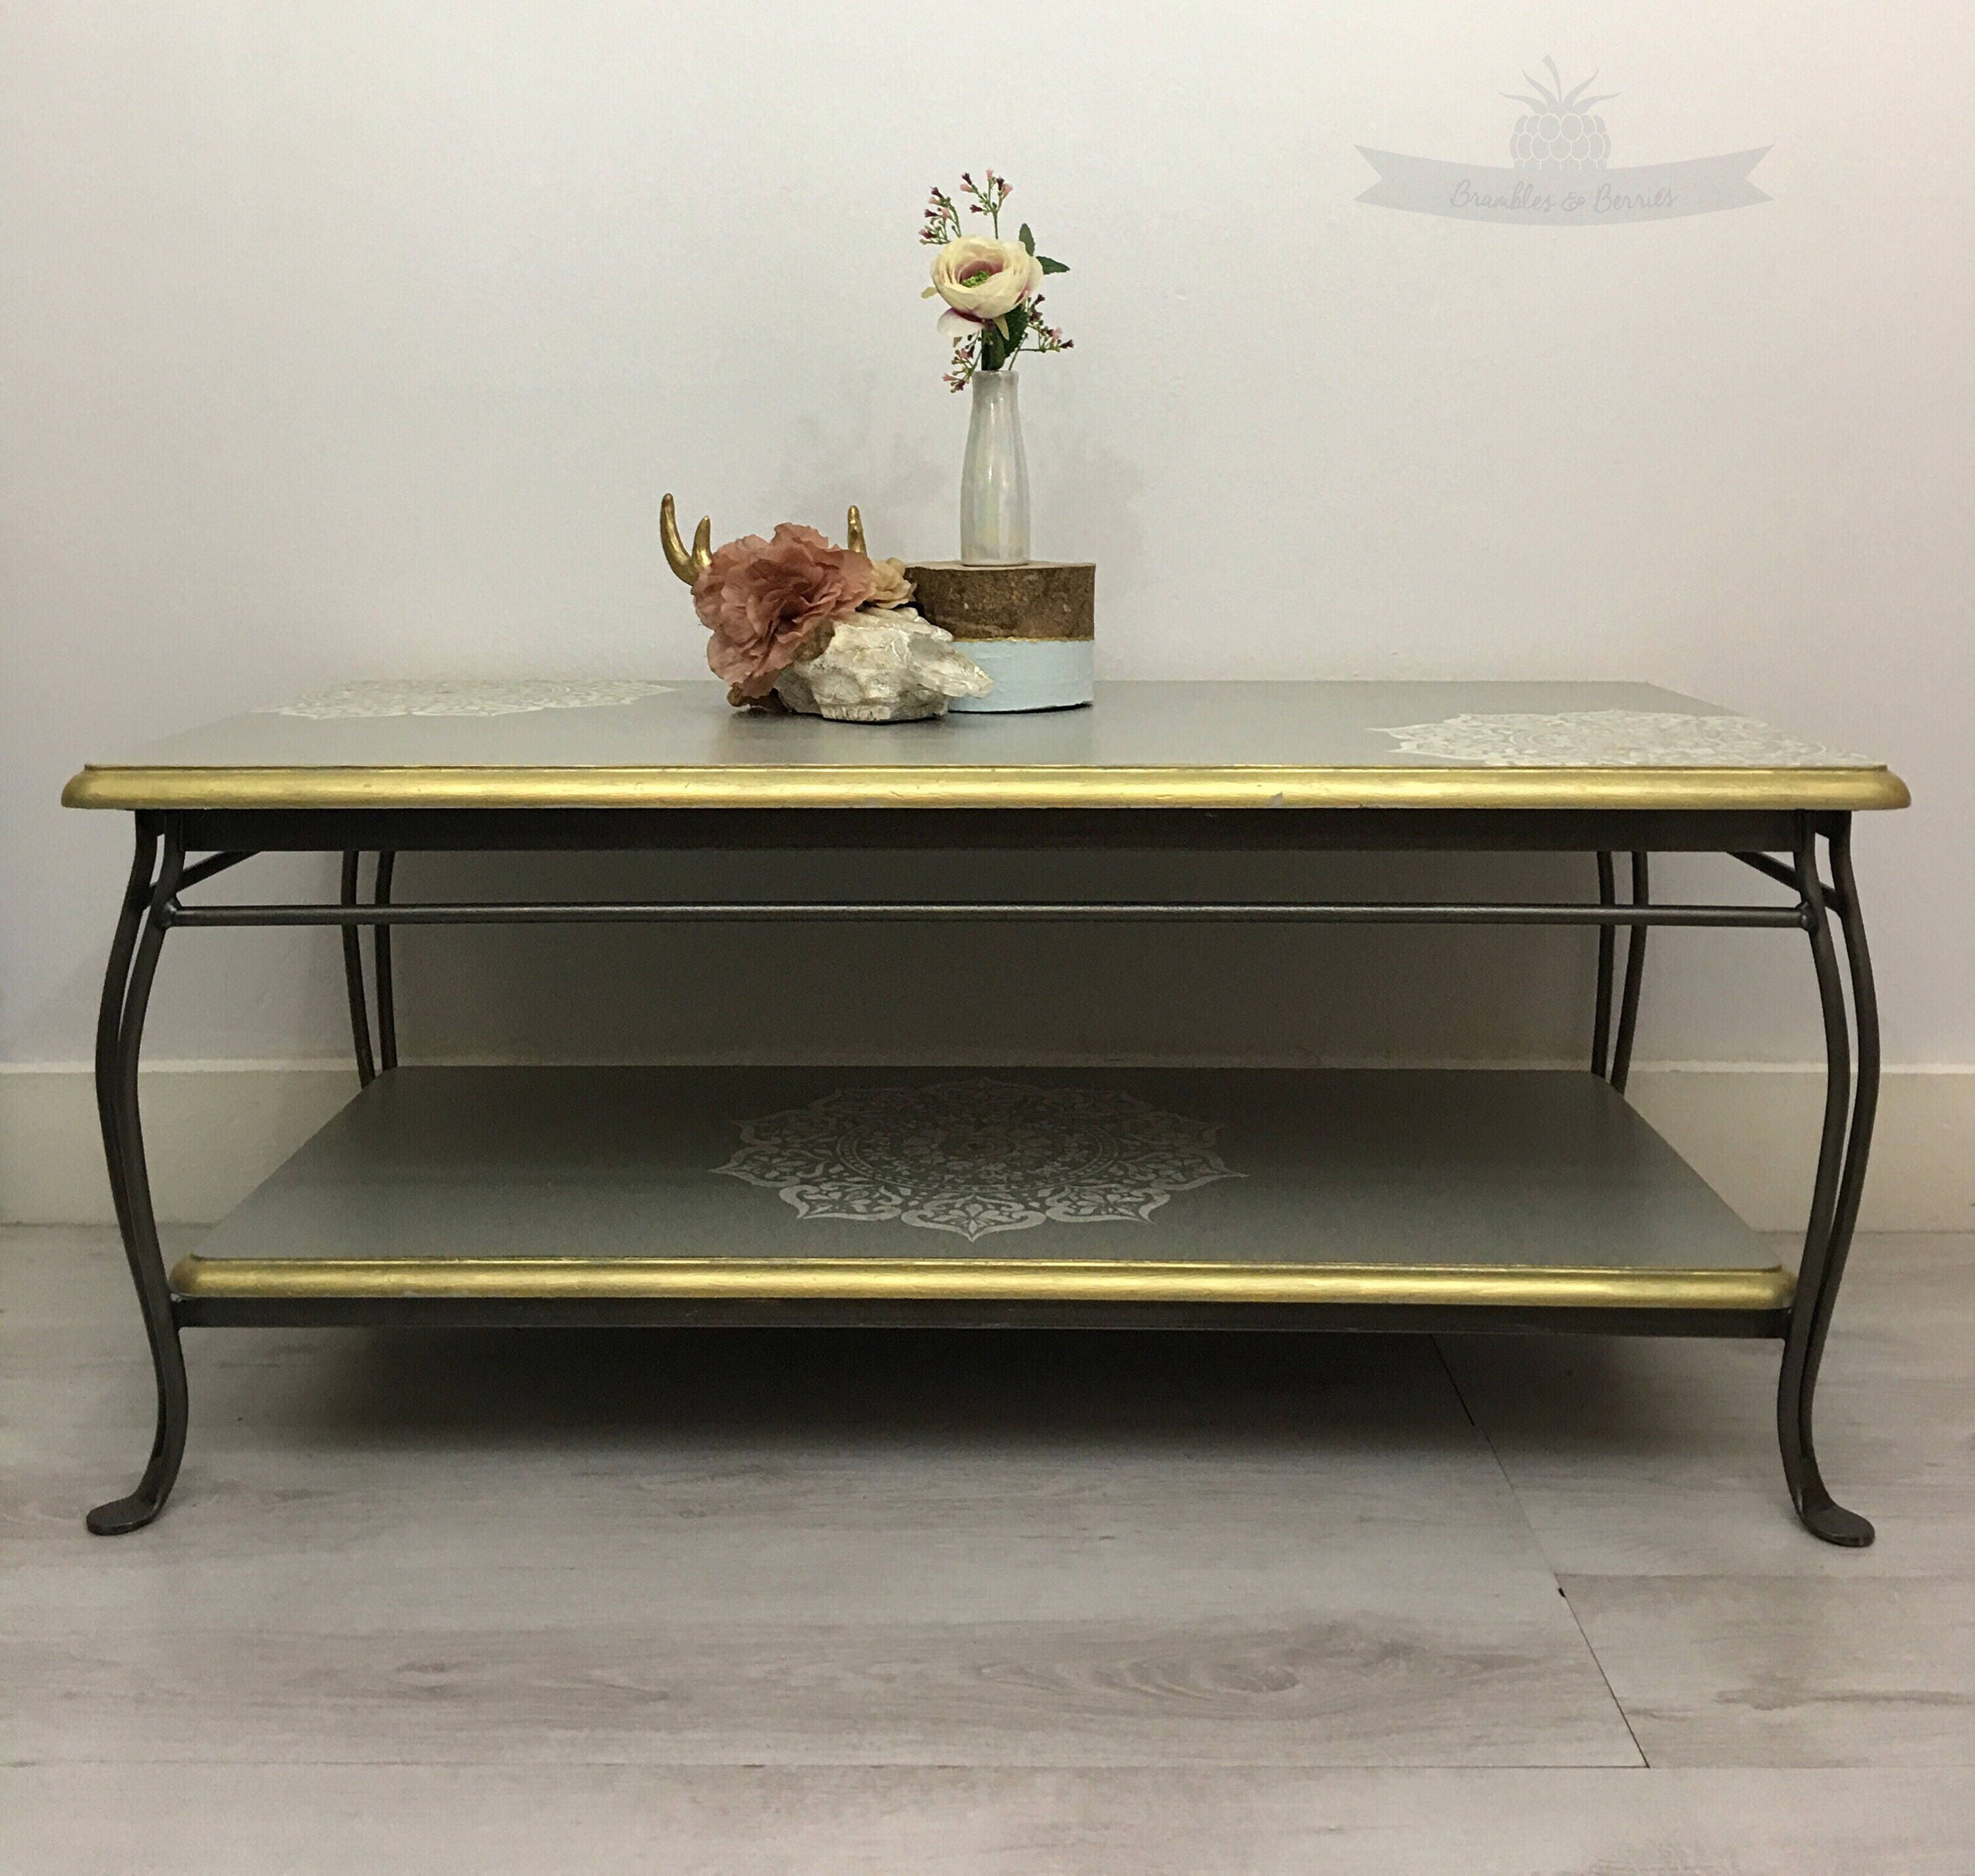 Upcycled coffee table. Rectangular coffee table. Small table. Side table. Office furniture. Shop furniture. Vintage furniture. Vintage table